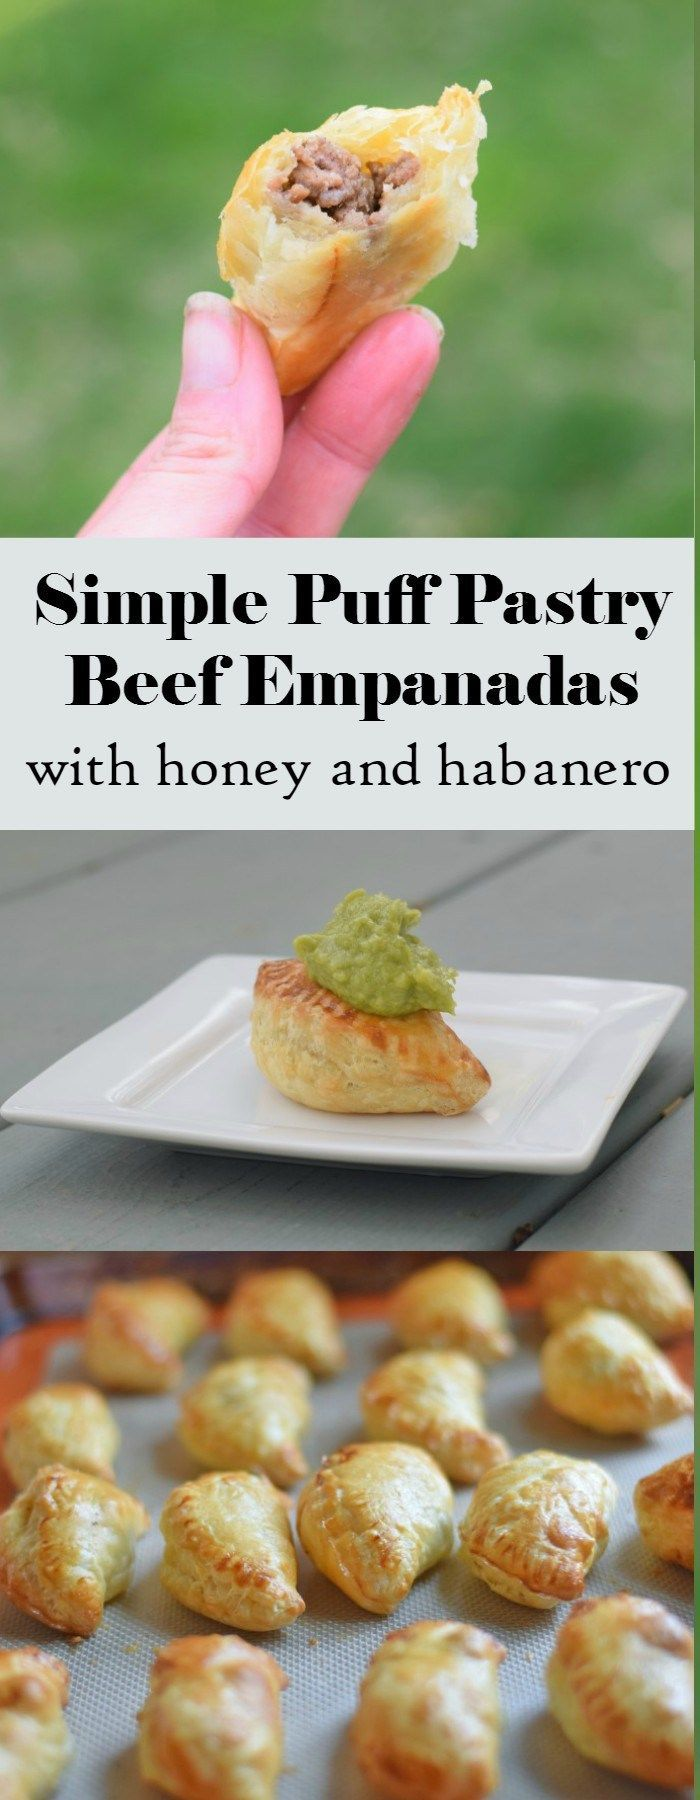 Delicious honey habanero homemade beef empanadas recipe using puff pastry. This easy appetizer is portable and has fantastic flavor for your summer picnics and more. AD #FlavorRocksNTL #KingOfFlavor